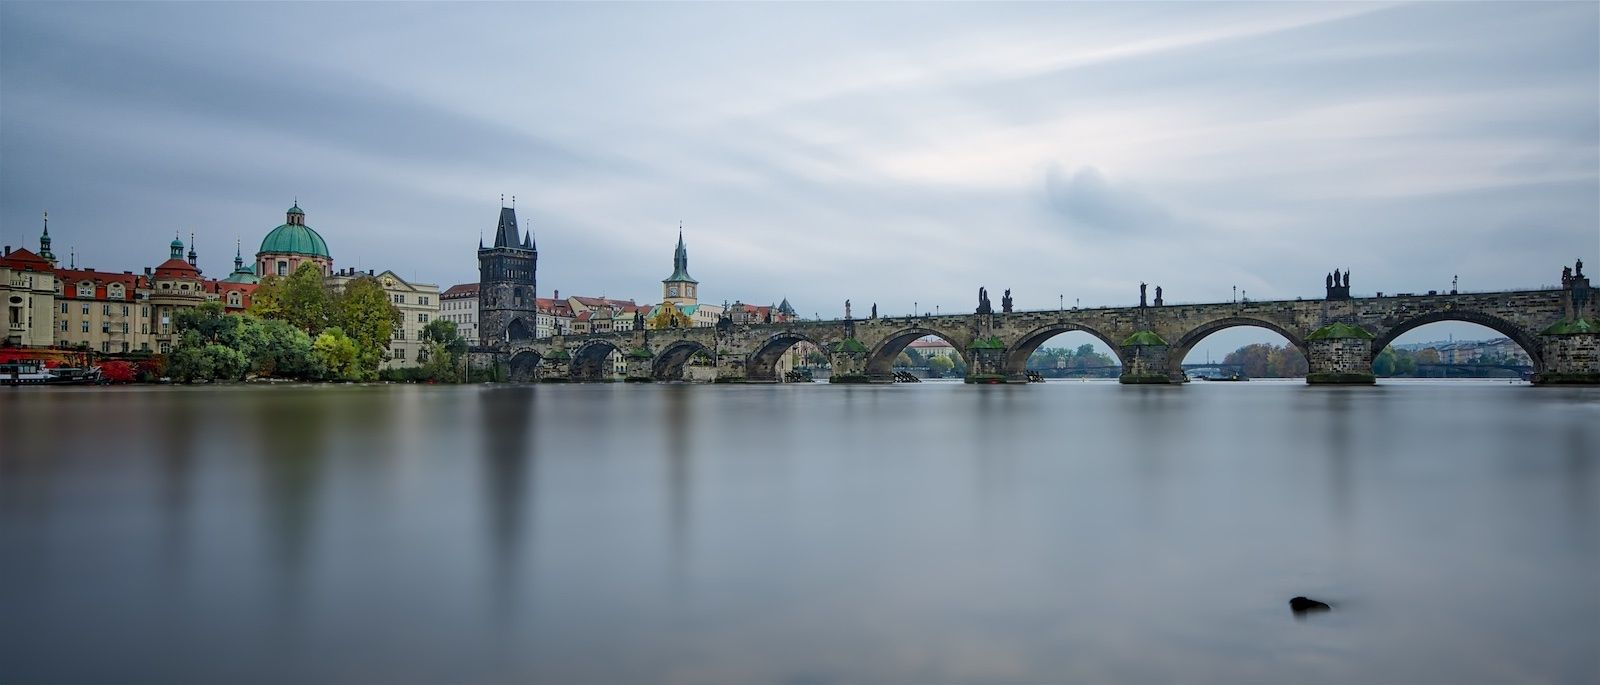 The Charles Bridge - Dear friends,  Thank you very much for your Like, positive comments and constructive criticism.  Ed